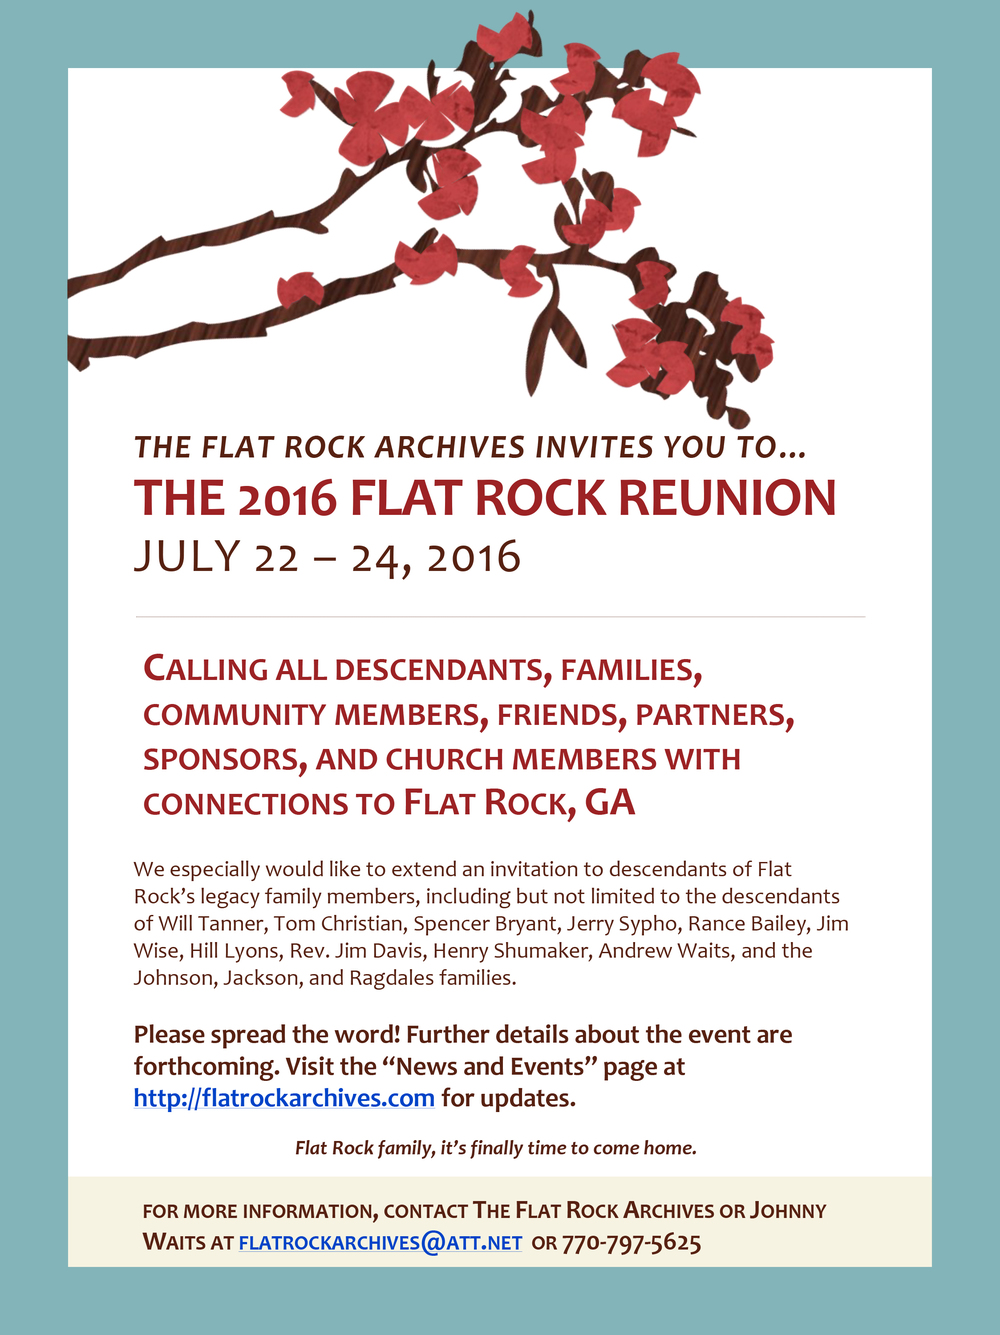 flat rock reunion flyer.jpg